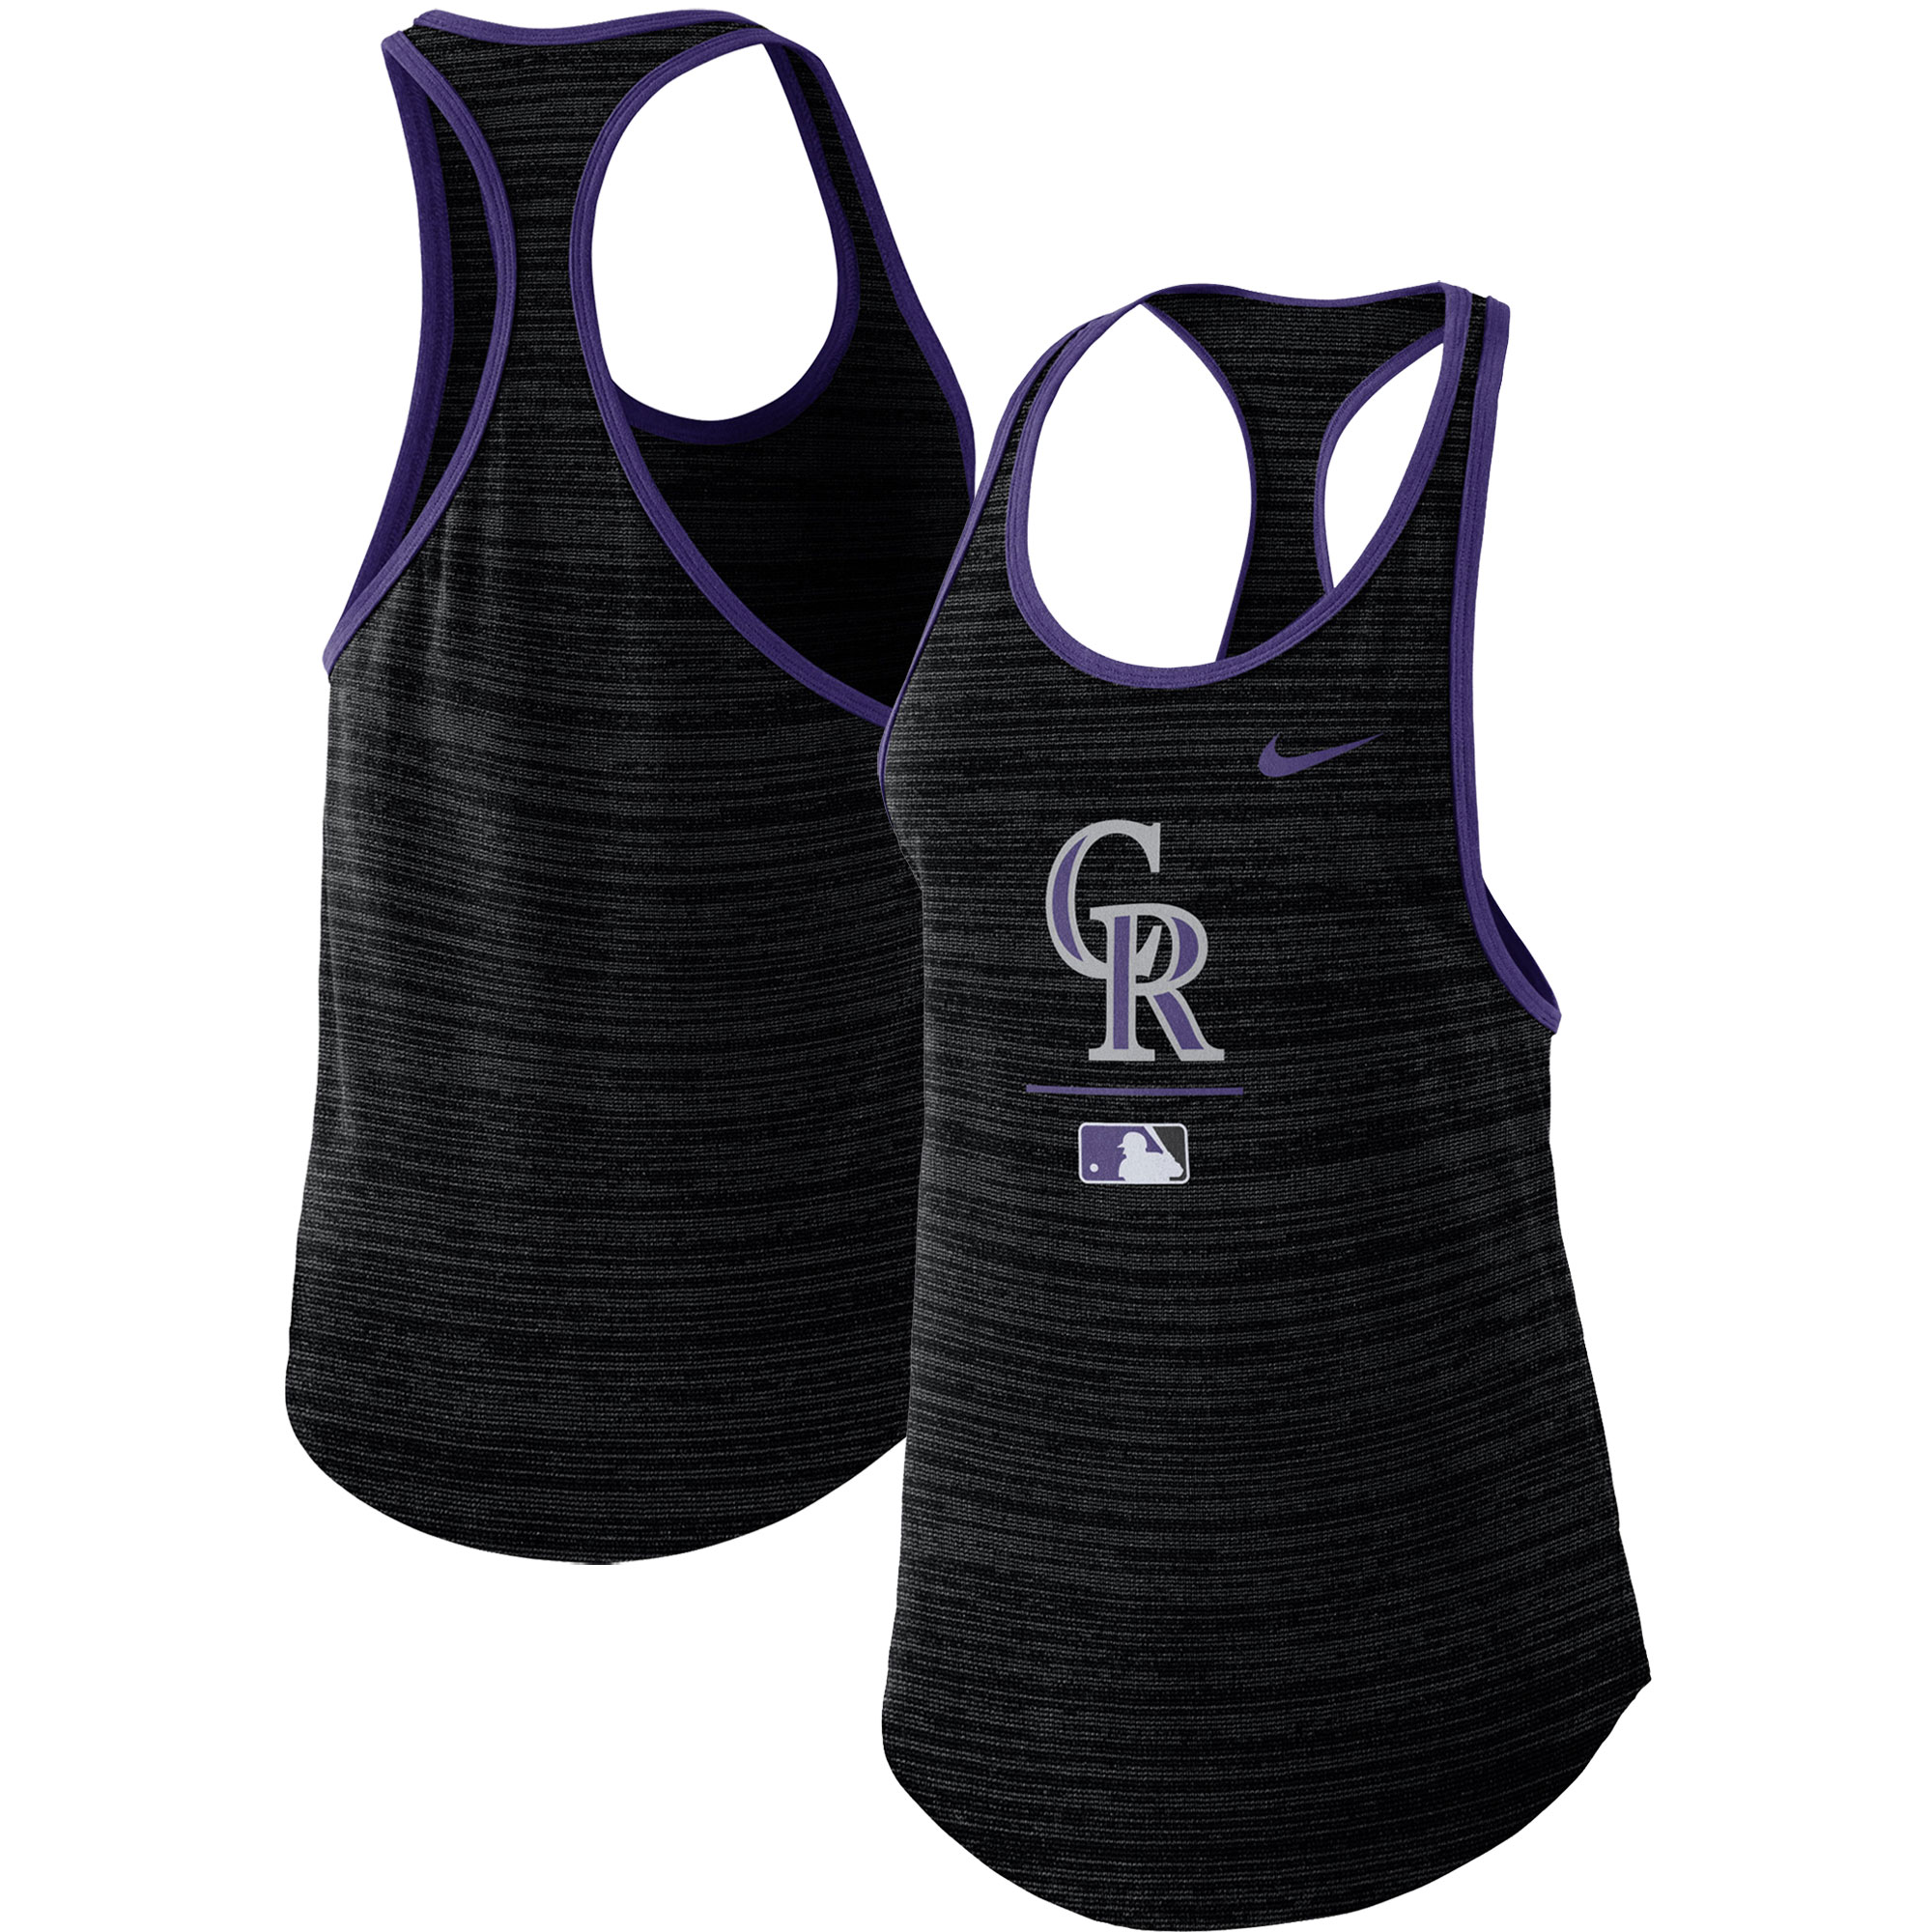 Colorado Rockies Nike Women's Authentic Collection Velocity Team Issue Racerback Tank Top - Black